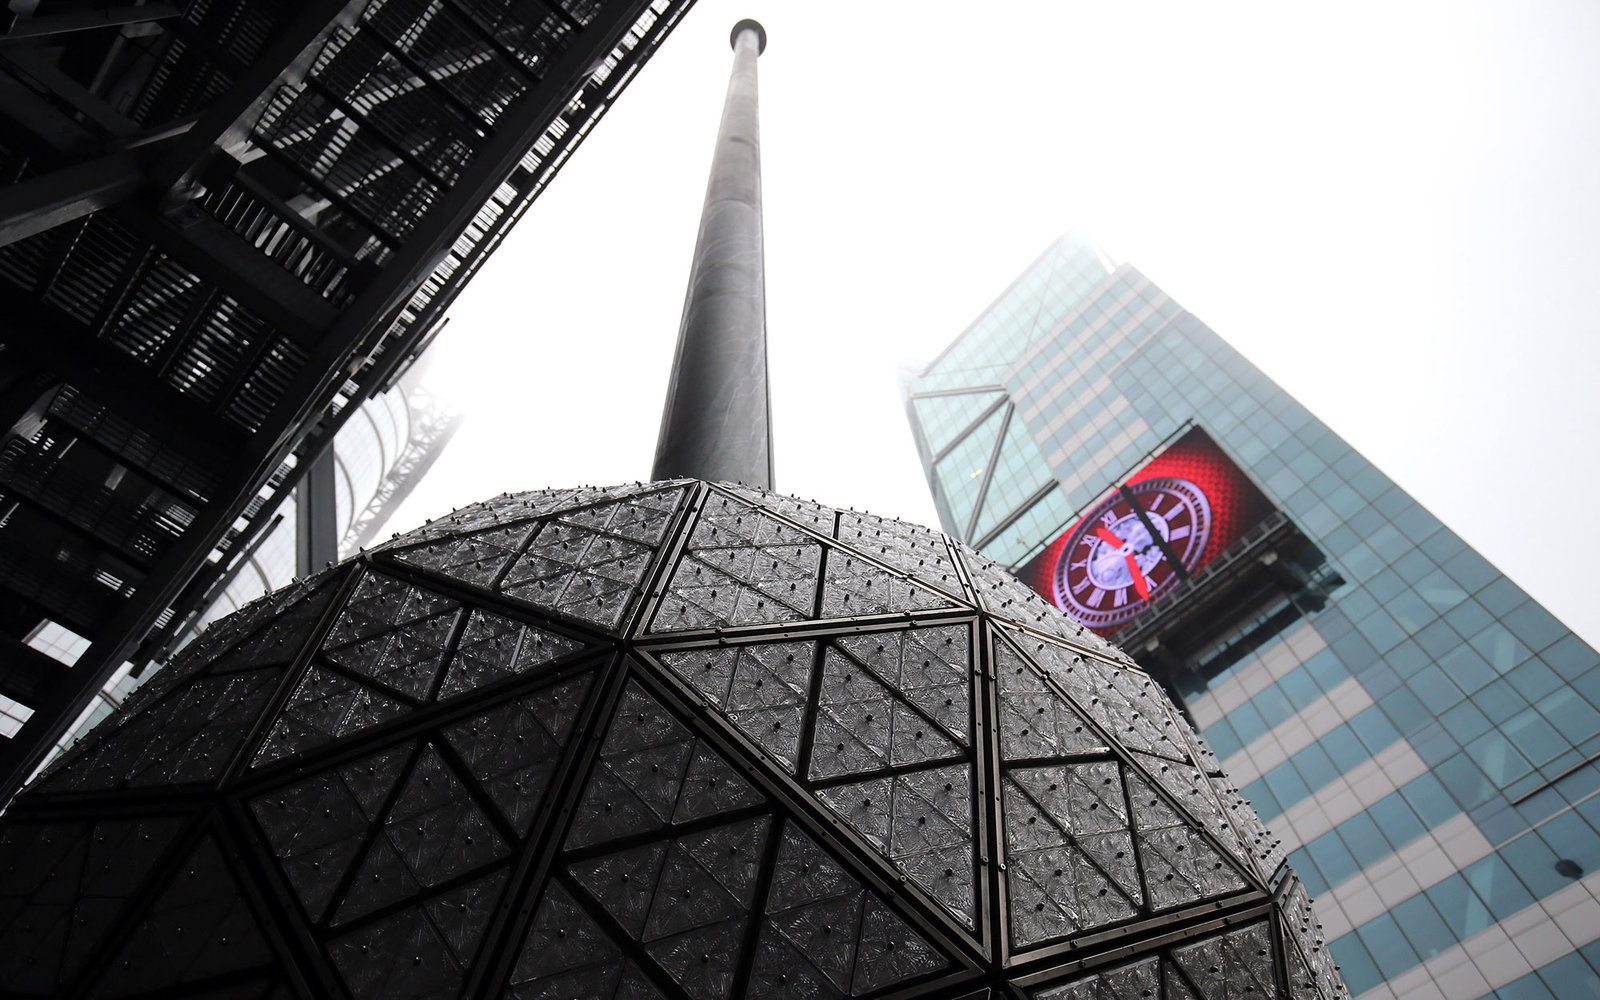 Livestream Watch The Ball Drop In Times Square On New Year S Eve